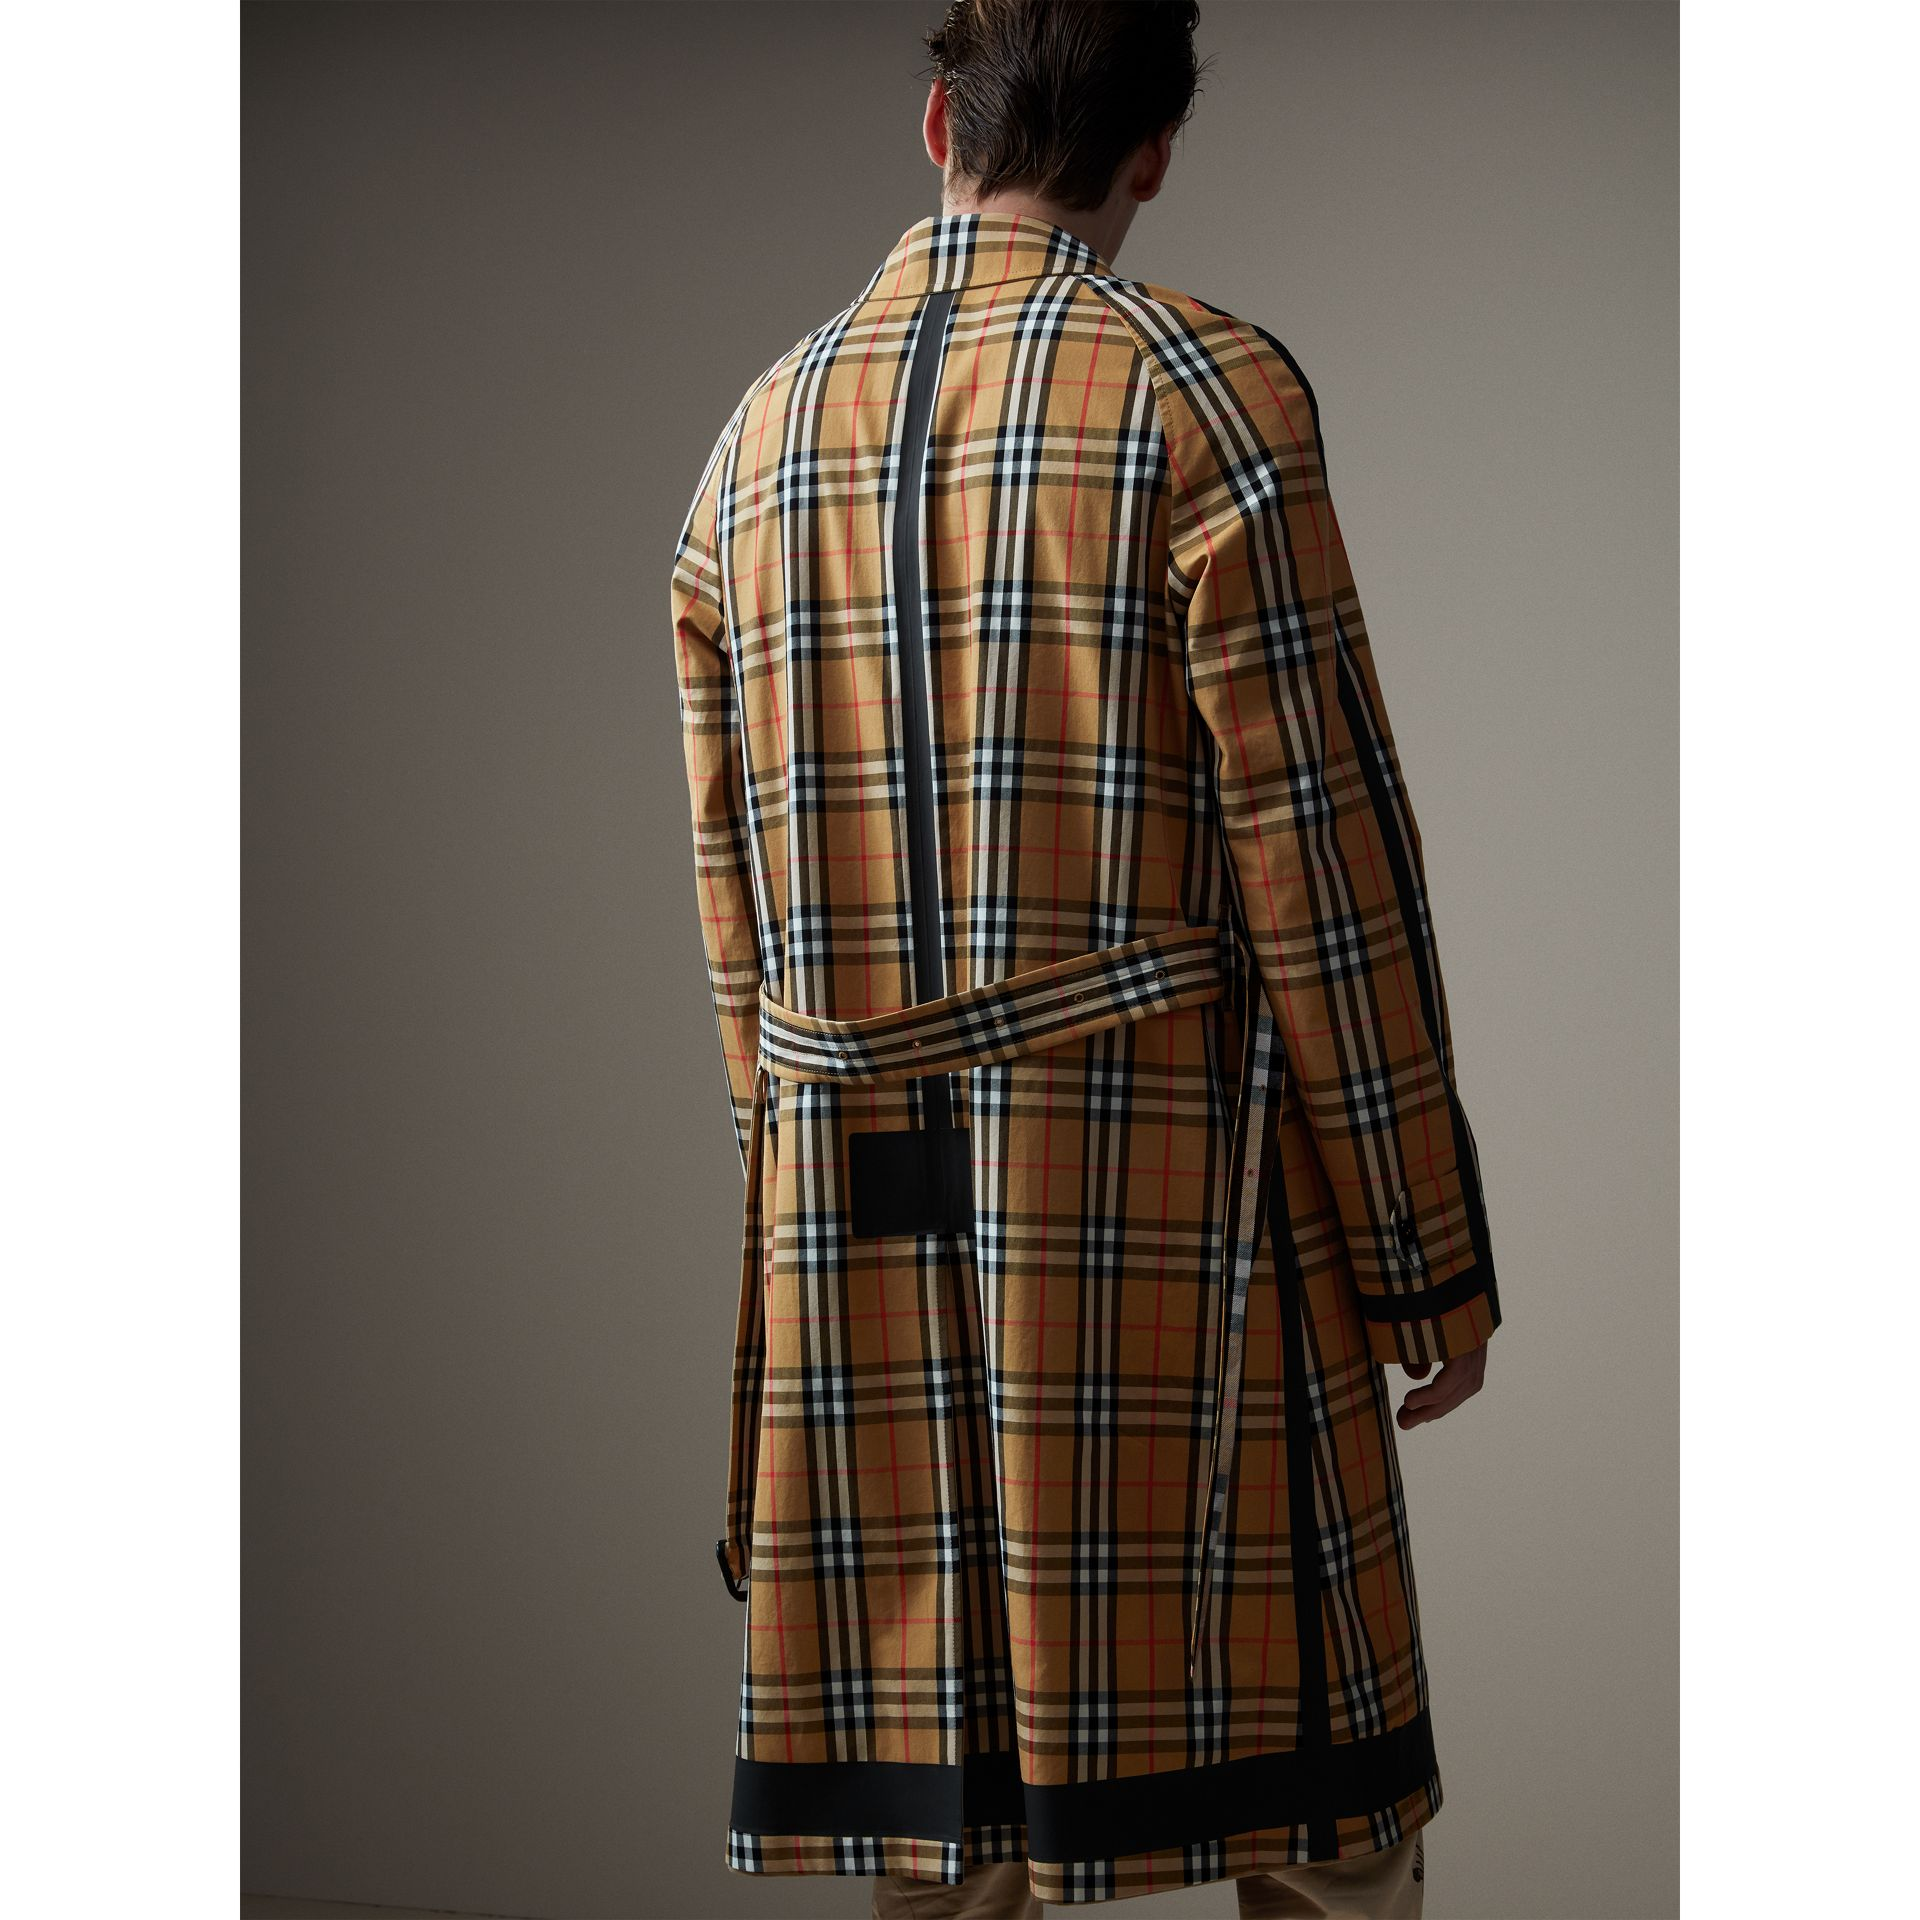 Paletot réversible en gabardine à motif Vintage check (Jaune Antique) - Homme | Burberry - photo de la galerie 3